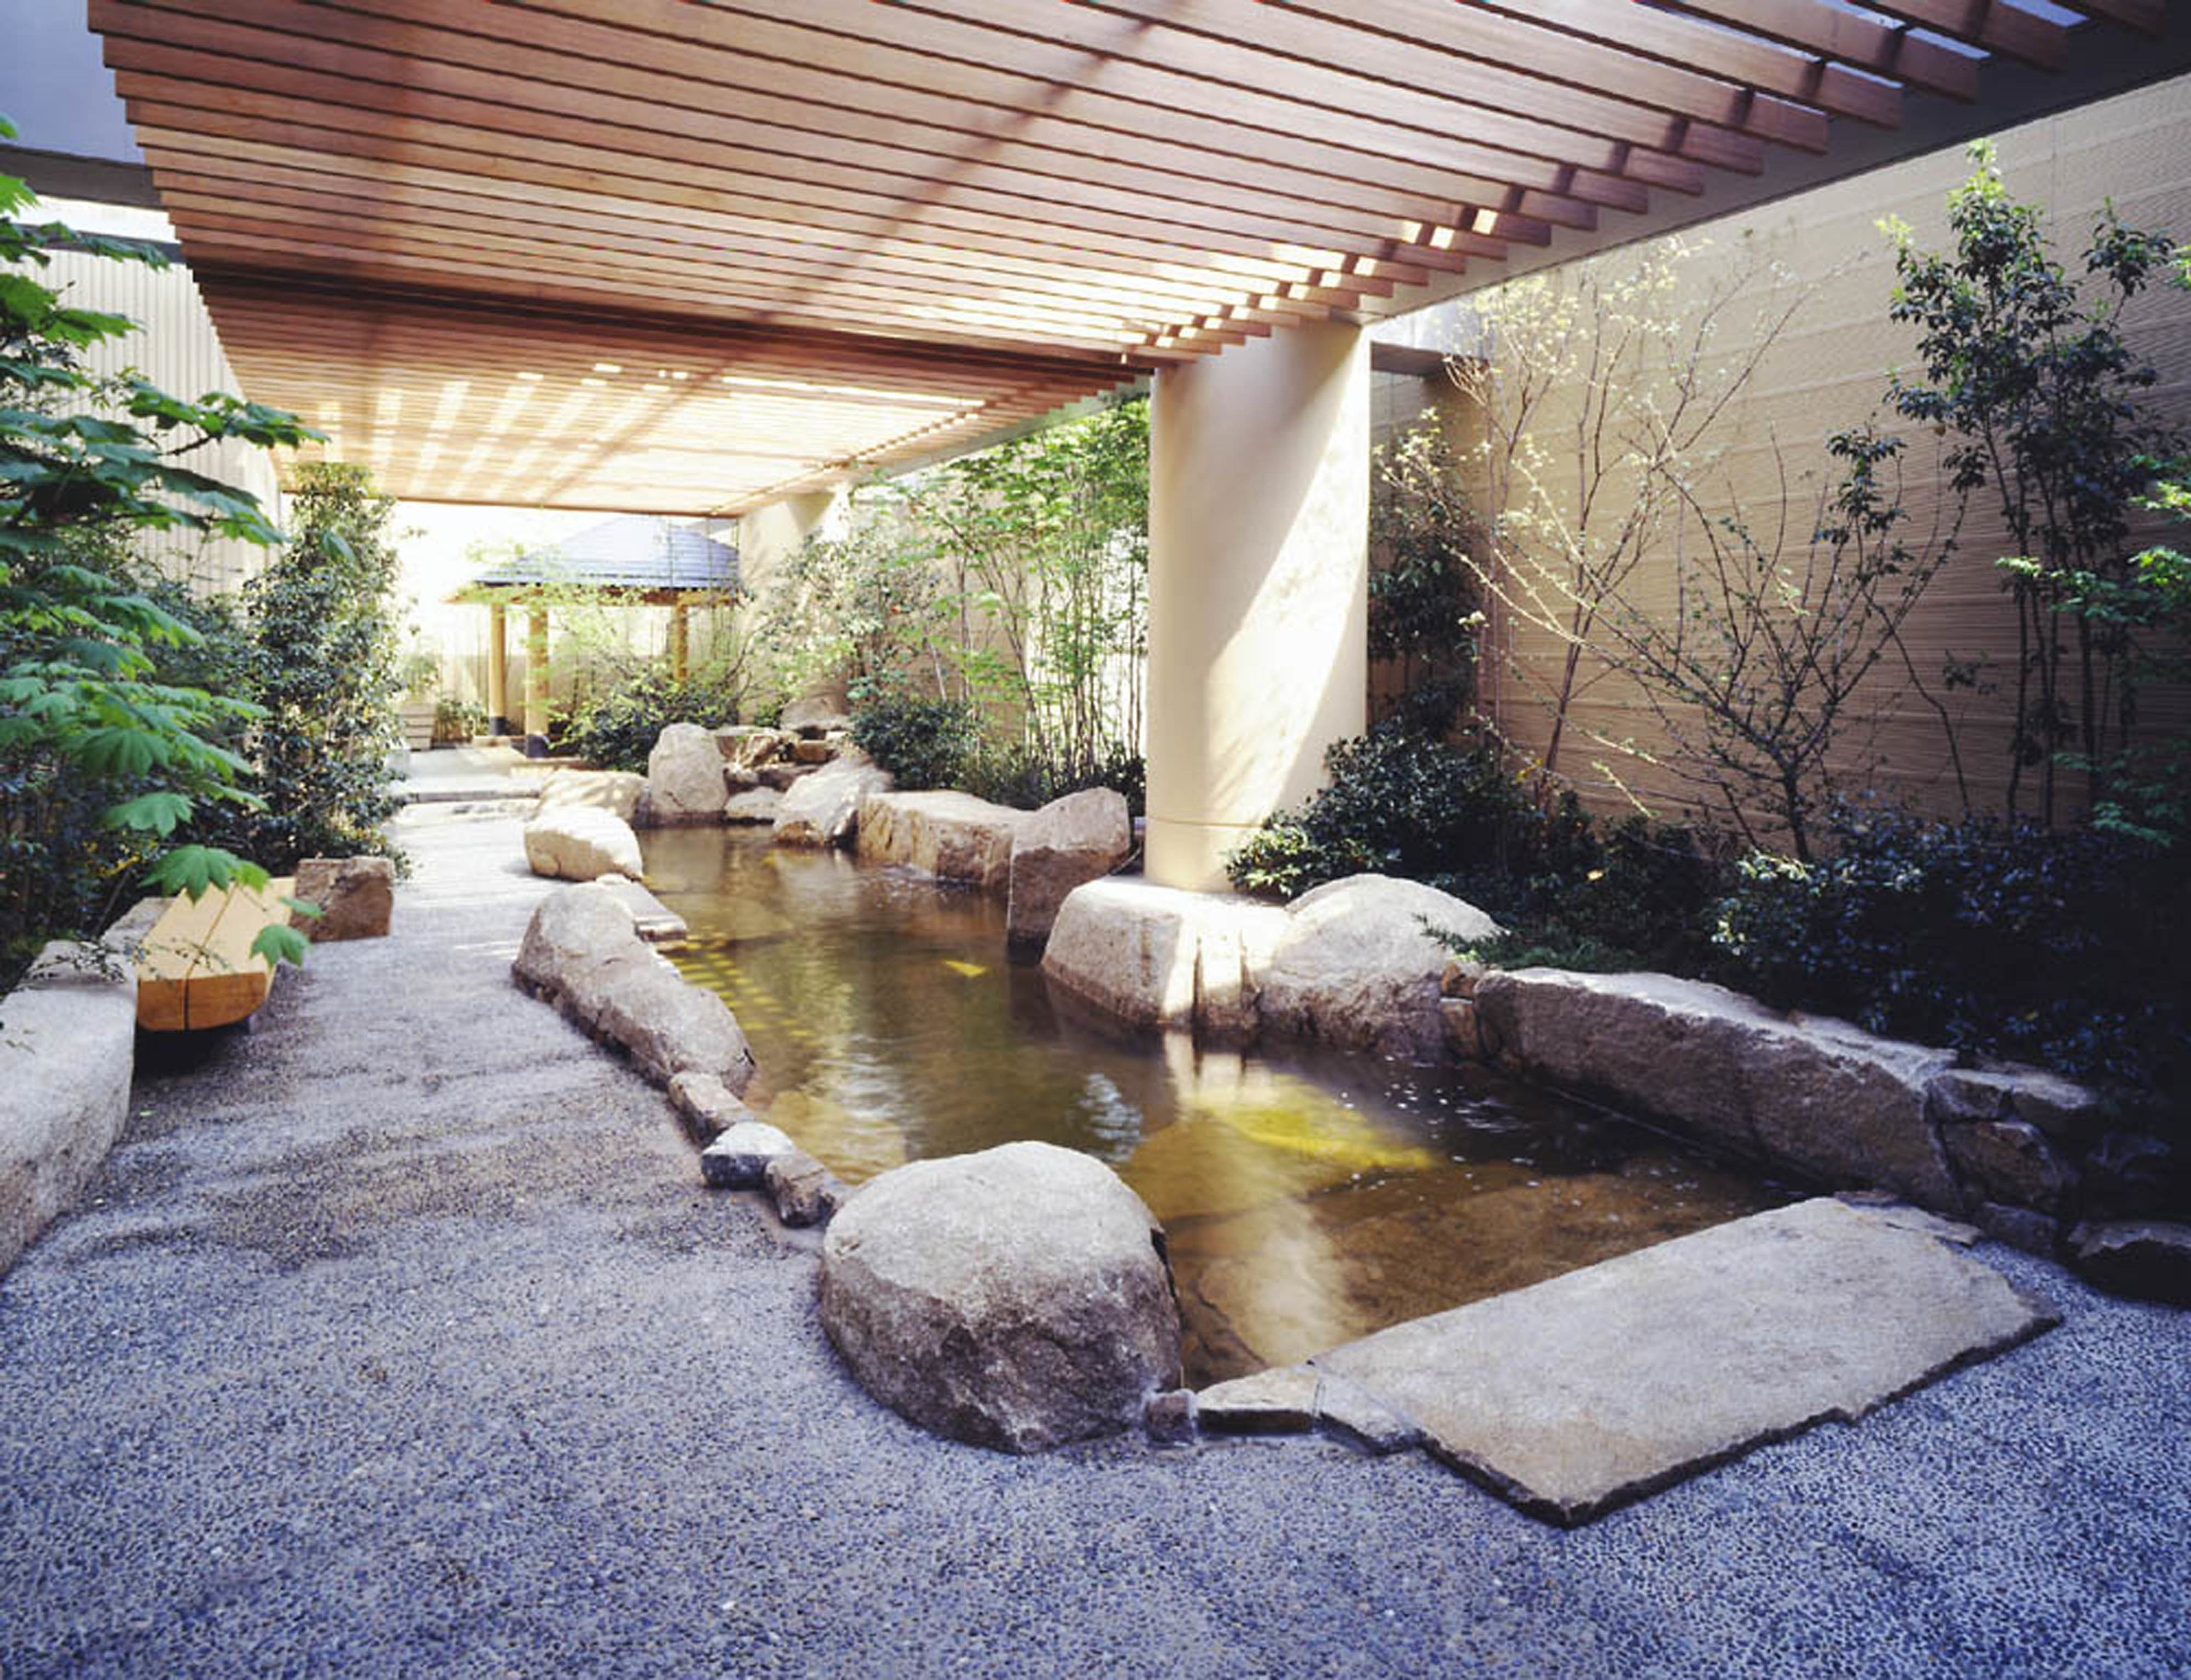 Top 10 tokyo bath houses time out tokyo for Japan dome house price